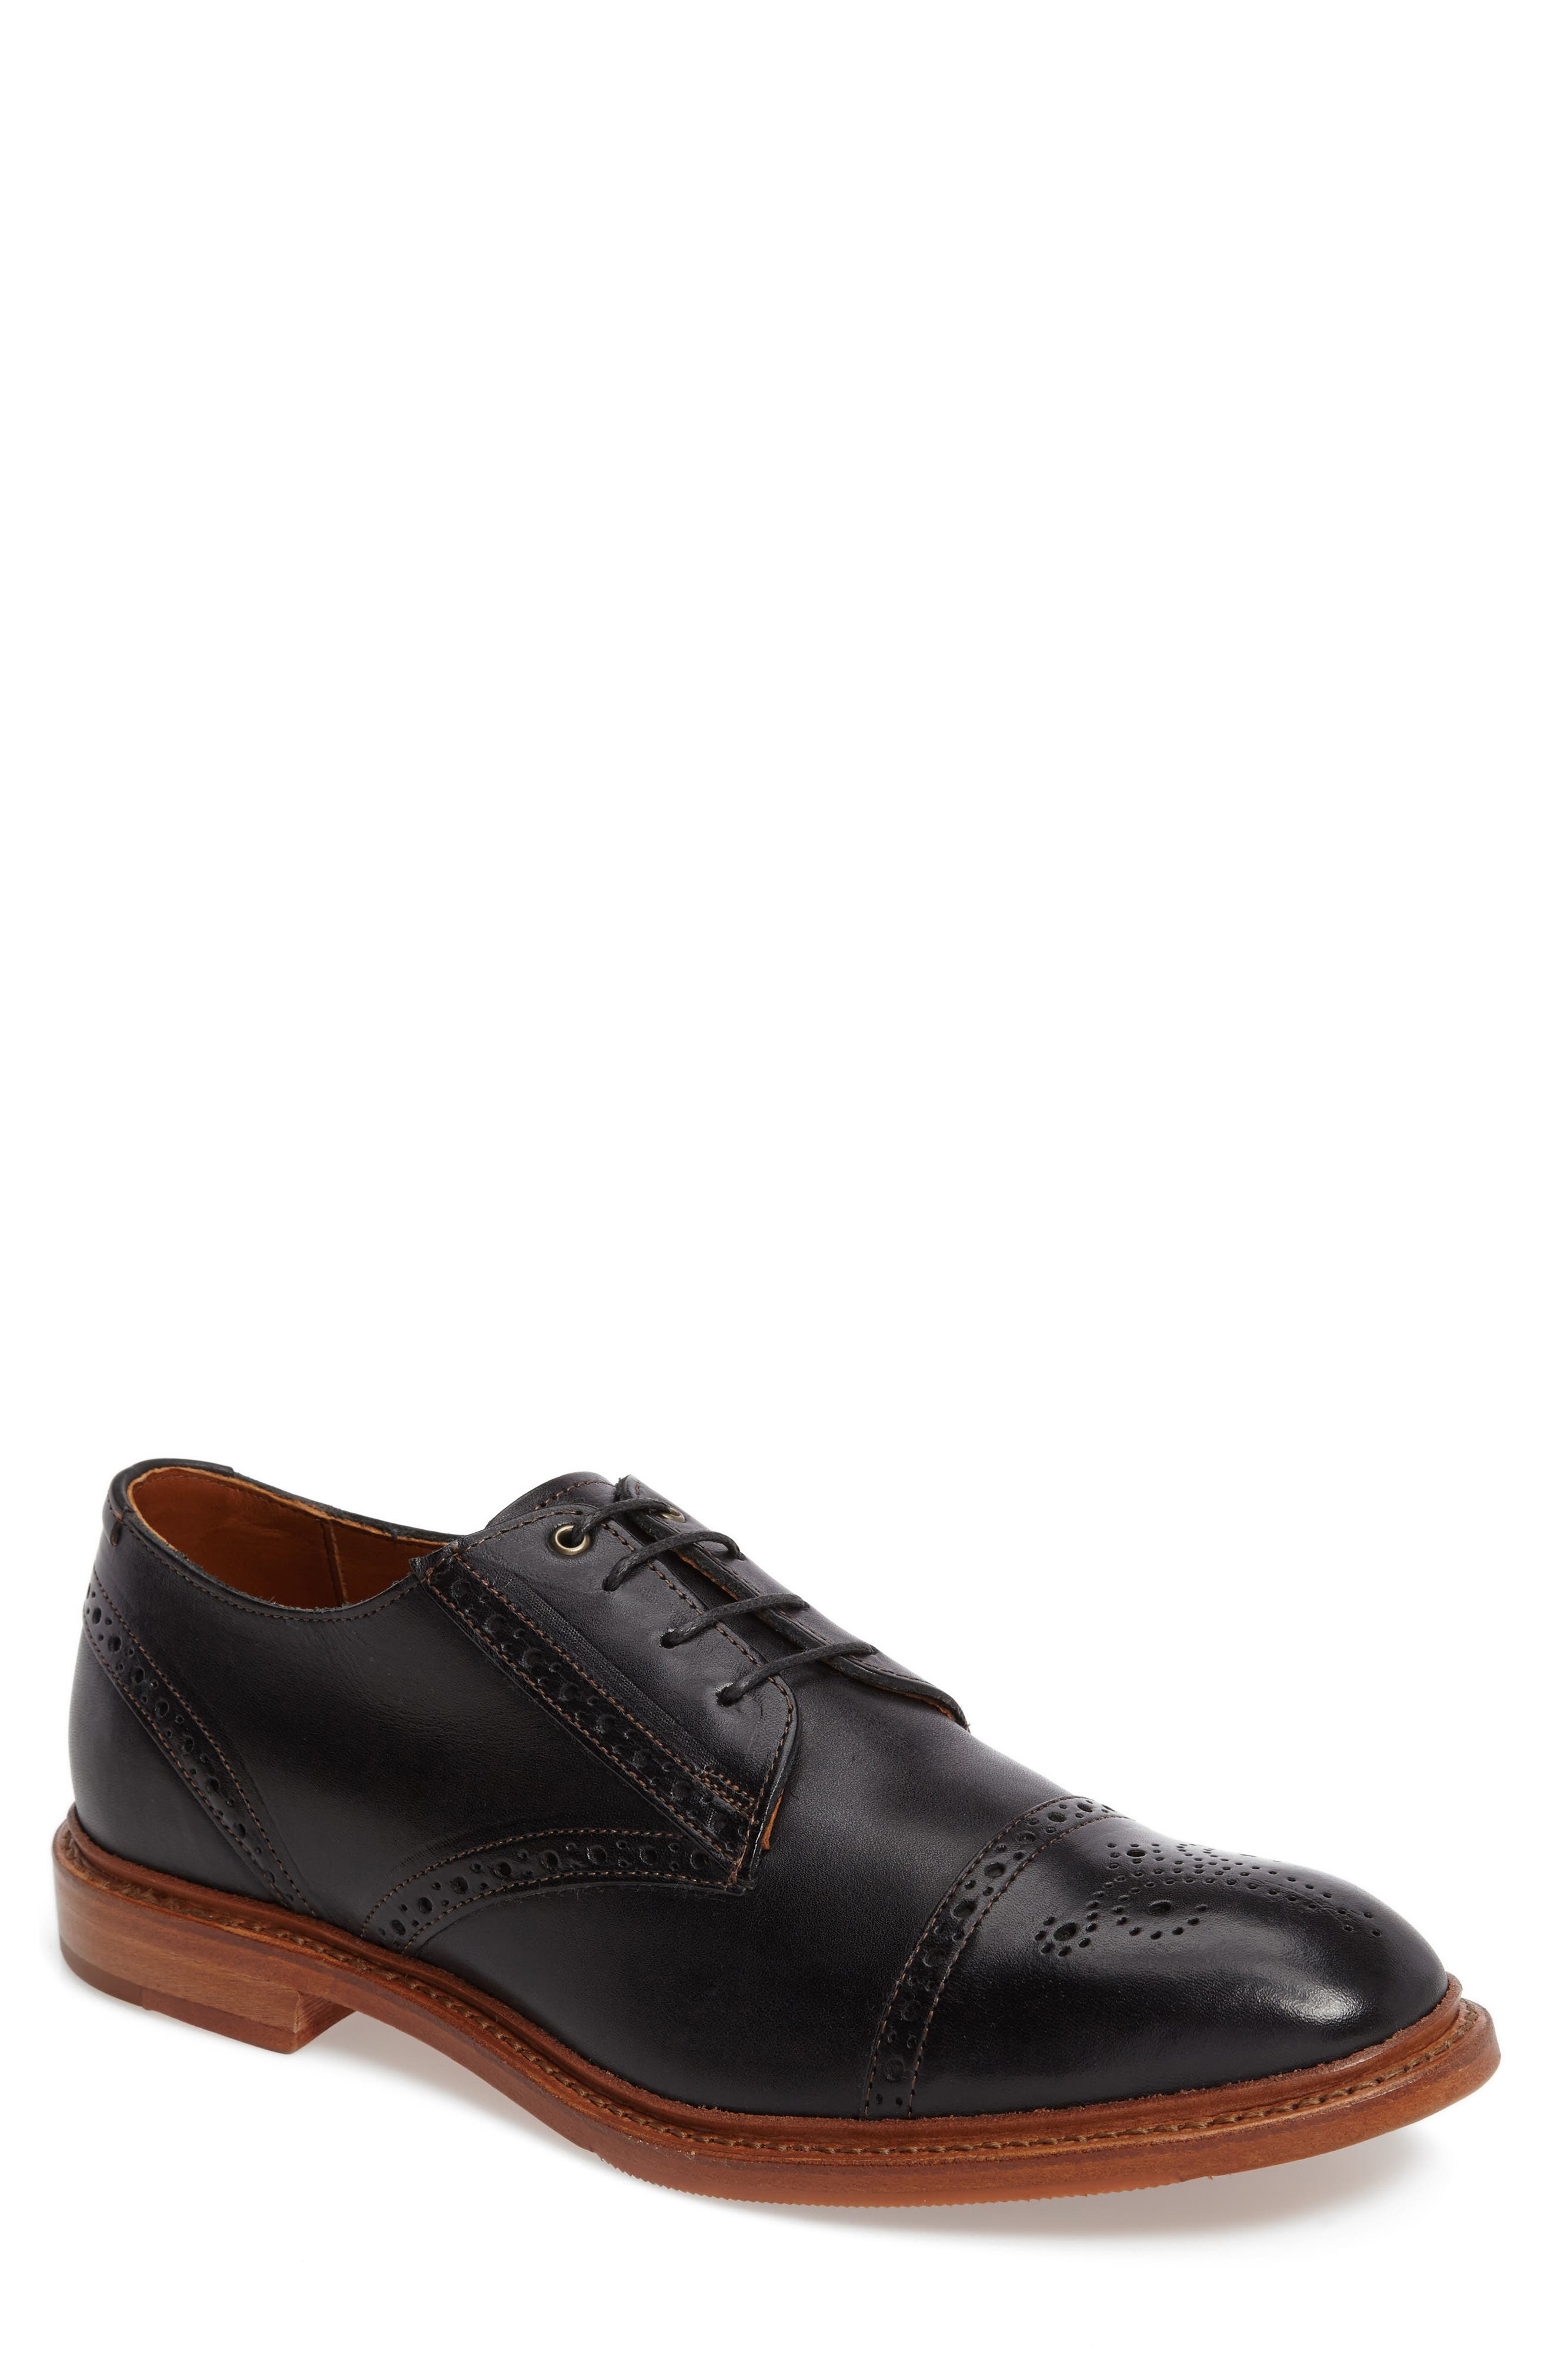 Image of Allen Edmonds 'Bainbridge' Cap Toe Derby - Multiple Widths Available